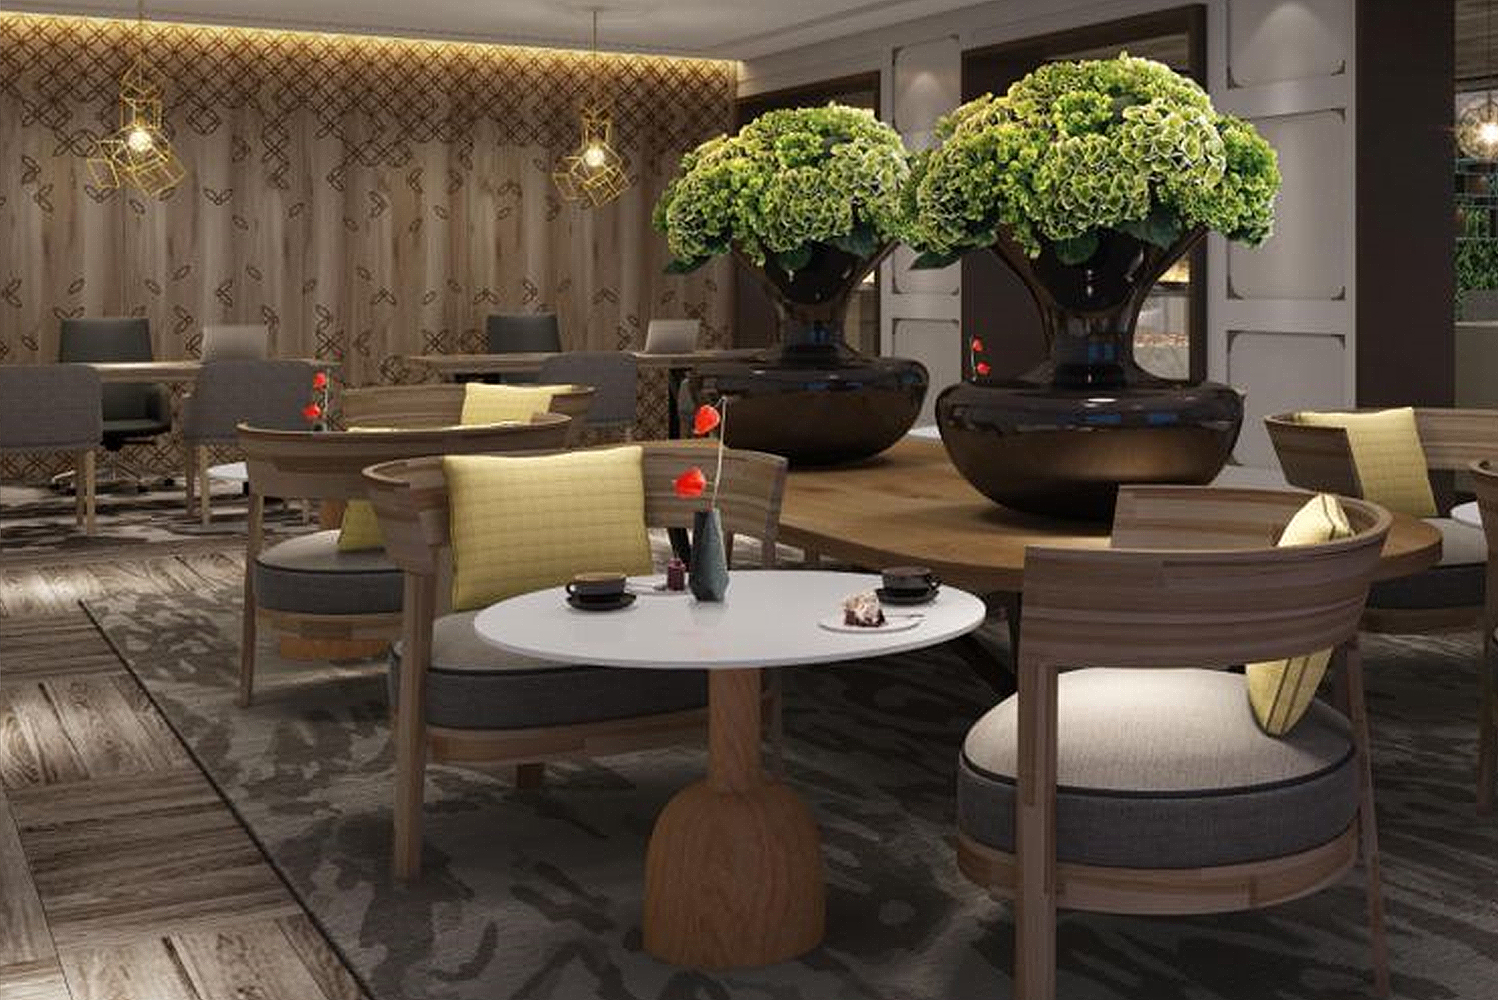 Guests staying in Club InterContinental rooms will have access to the Club InterContinental Lounge on the hotel's top floor.